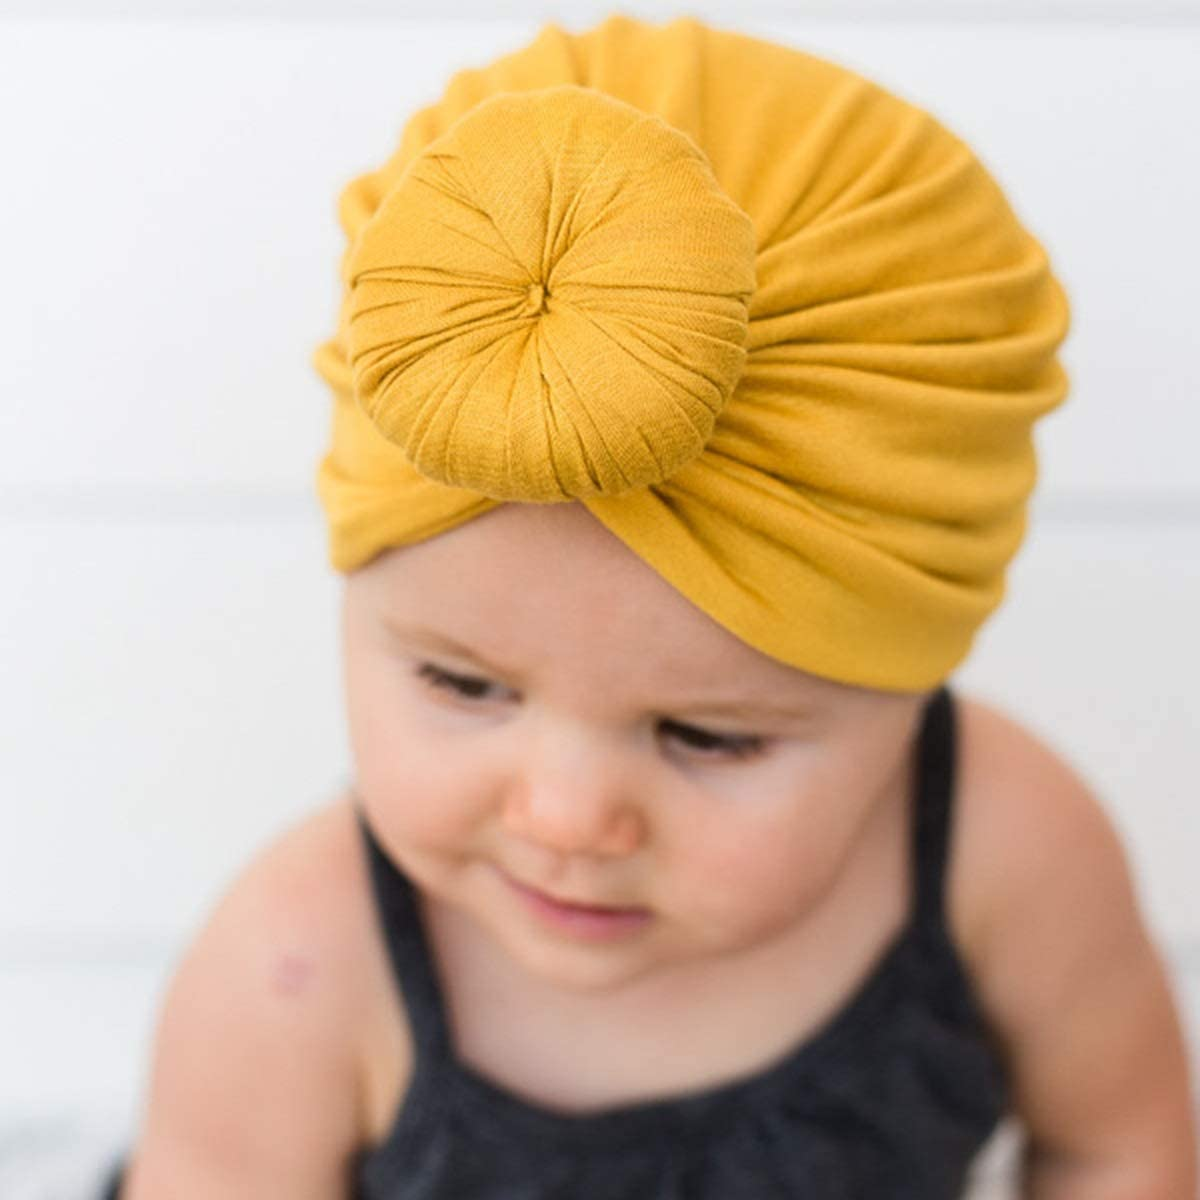 Color : White Leyeet Infant Toddler Baby Cap Cotton Tie Knot India Hat Indian Style Beanie Cap Winter Warm Headwear Turban Accessories